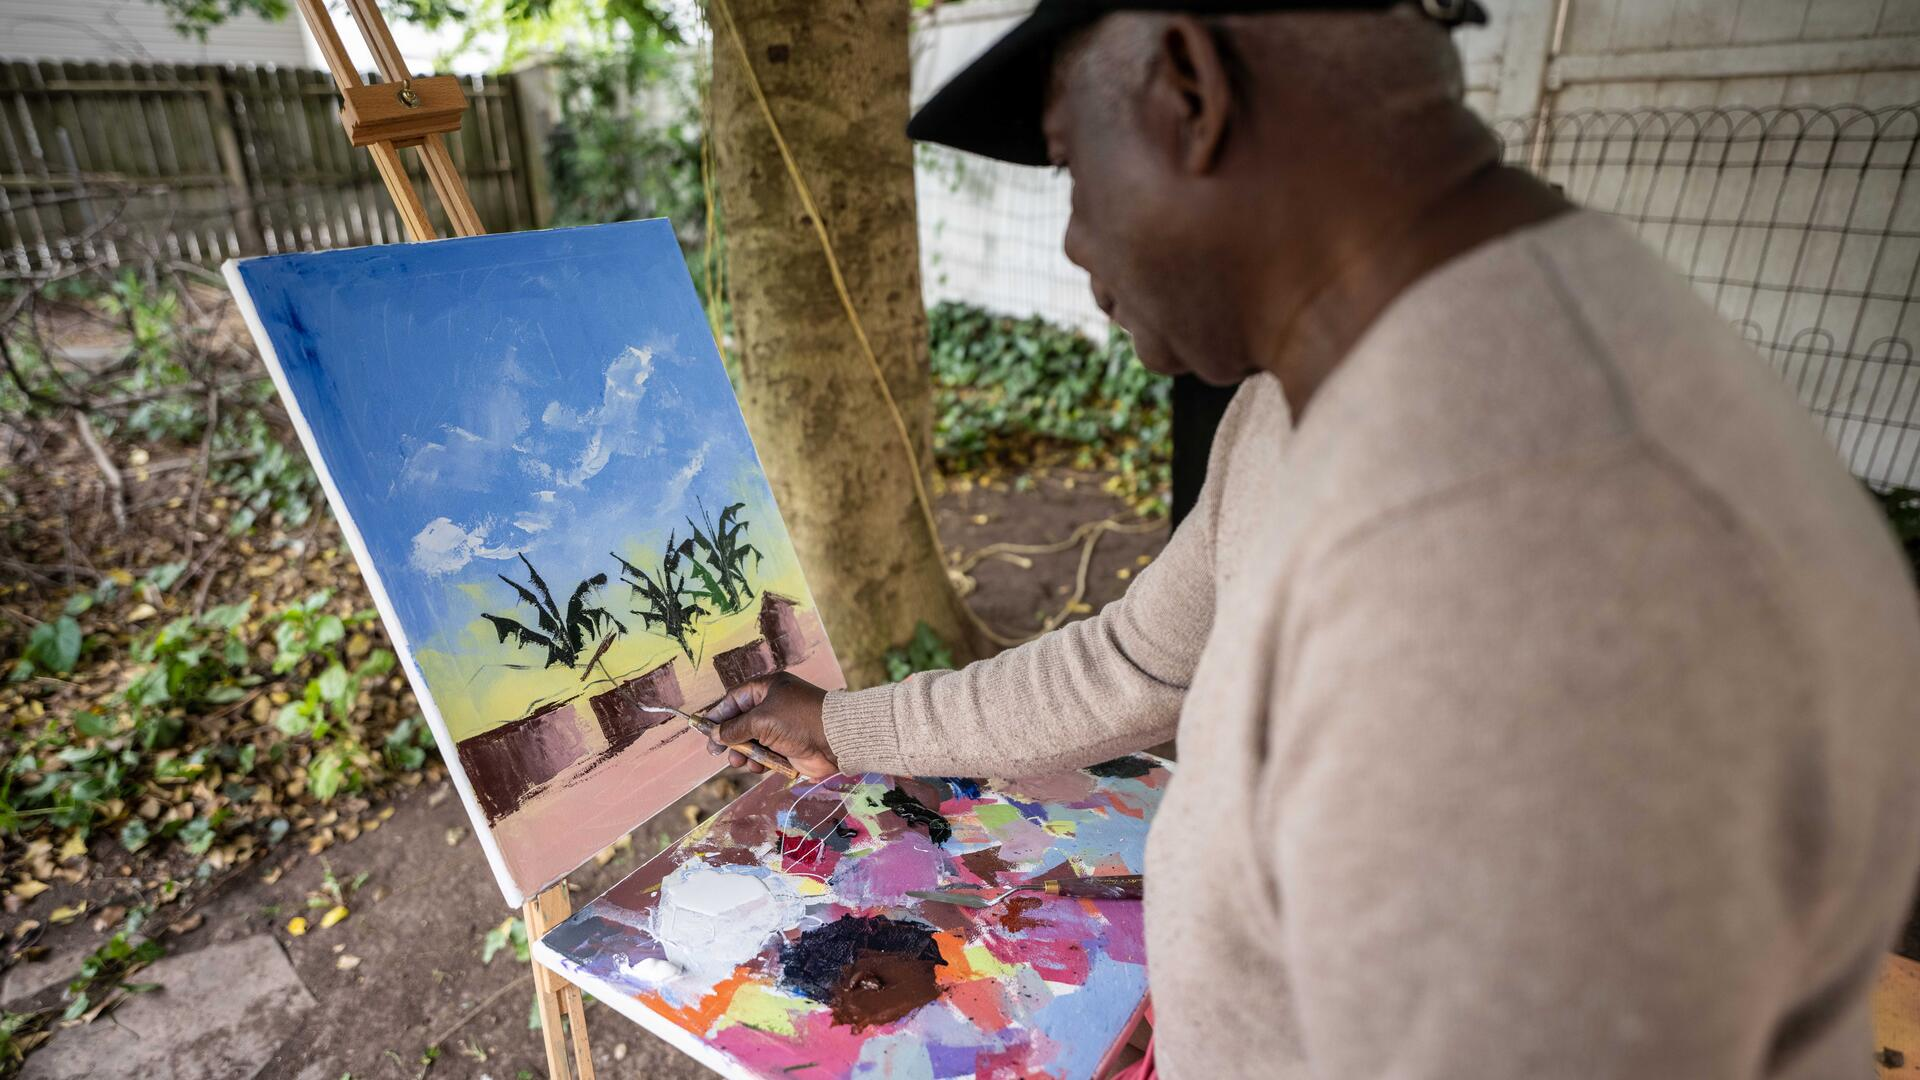 Muyambo Marcel Chishimba, an artist from Democratic Republic of Congo, paints a landscape with oil paints at an easel in his backyard in New Jersey